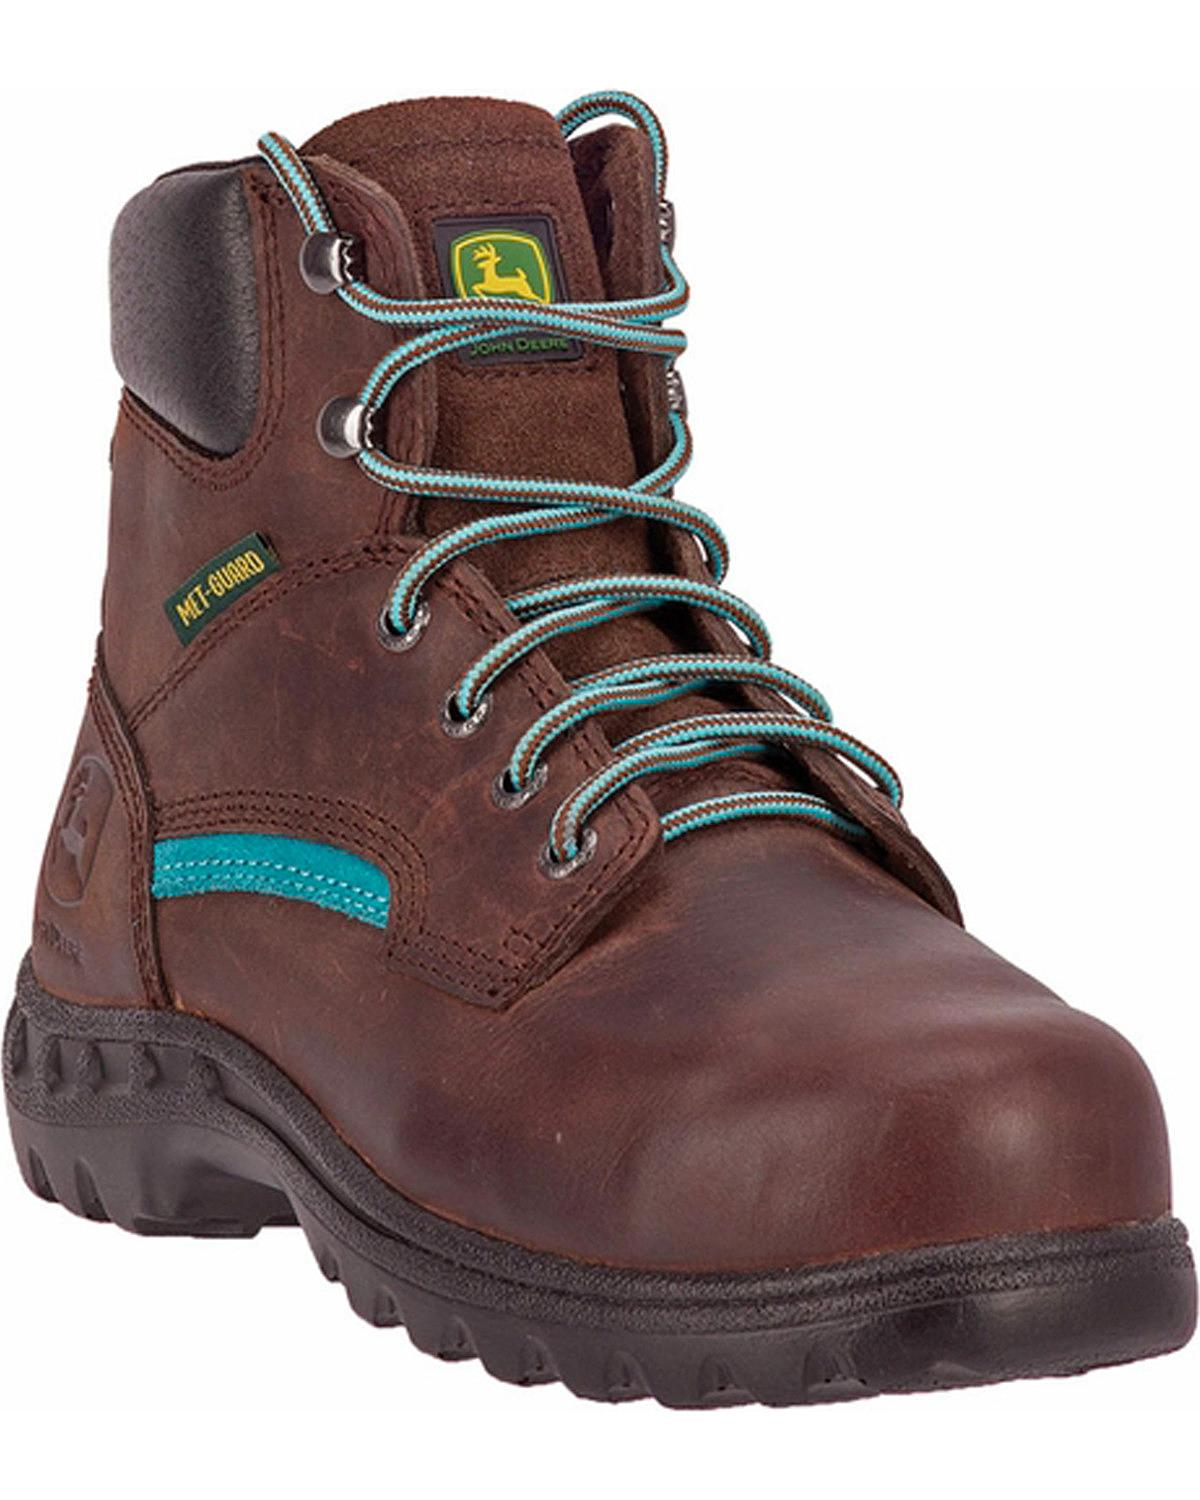 John John John Deere Women's Lace-Up Work Boot - Steel Toe - JD3672 204c5e